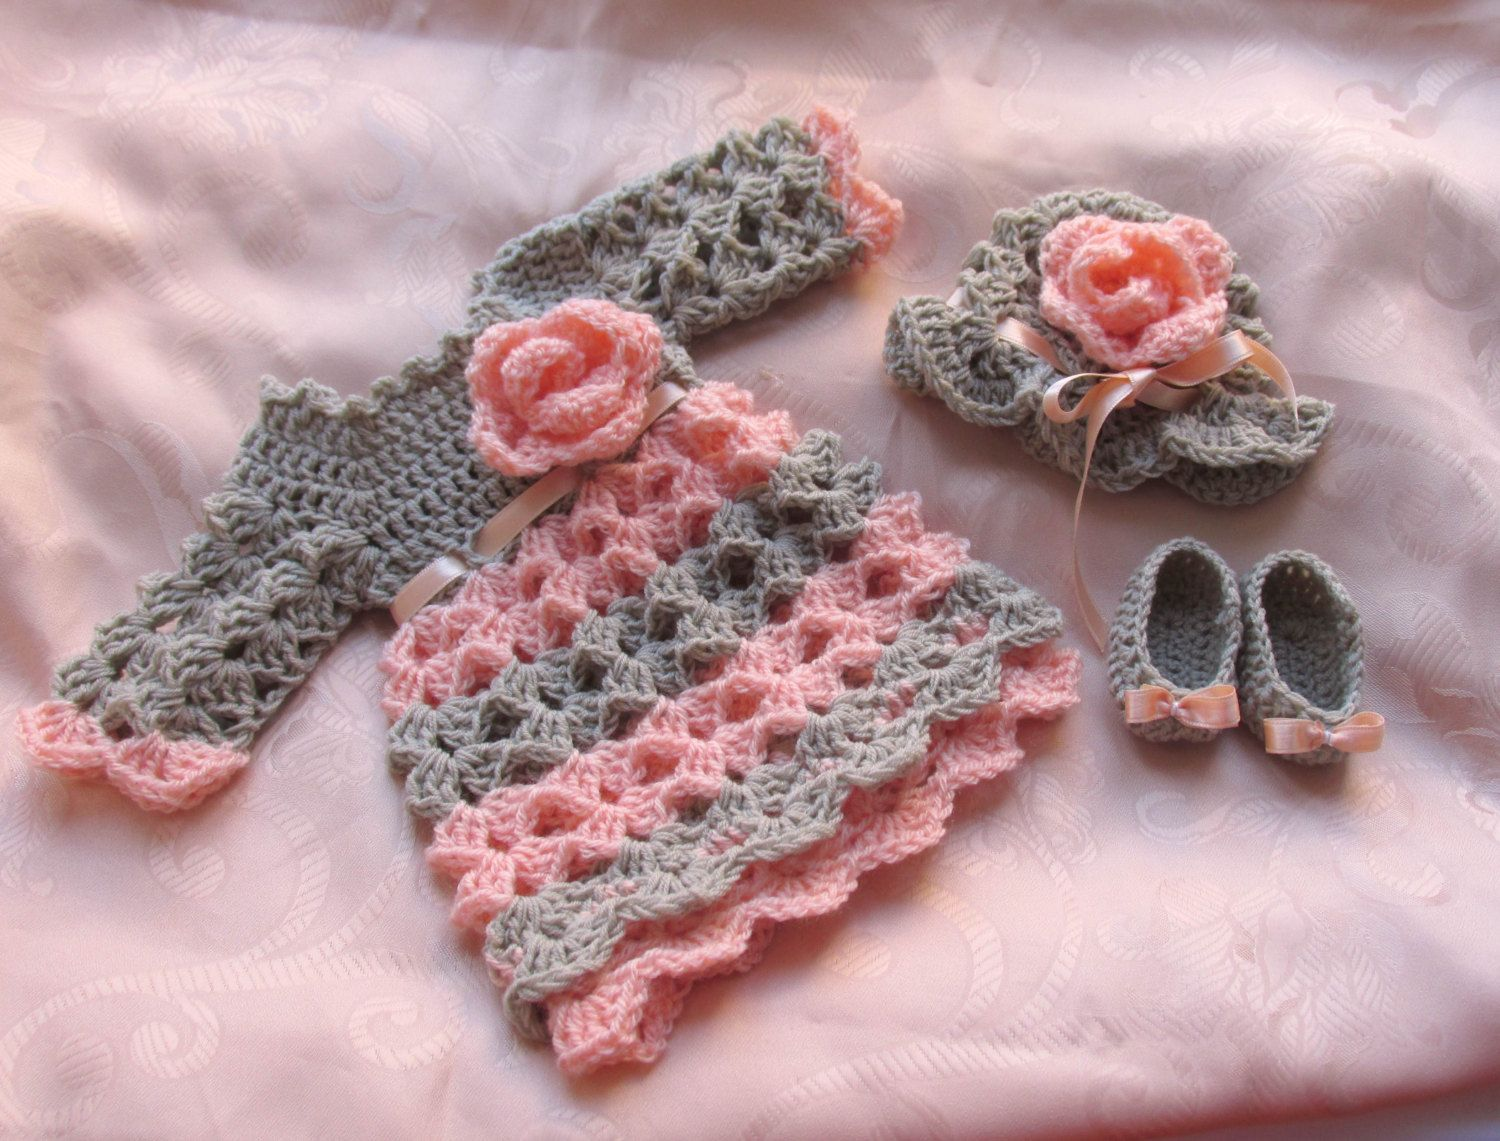 Ready to ship newborn girl crochet outfit in grey and peach ...